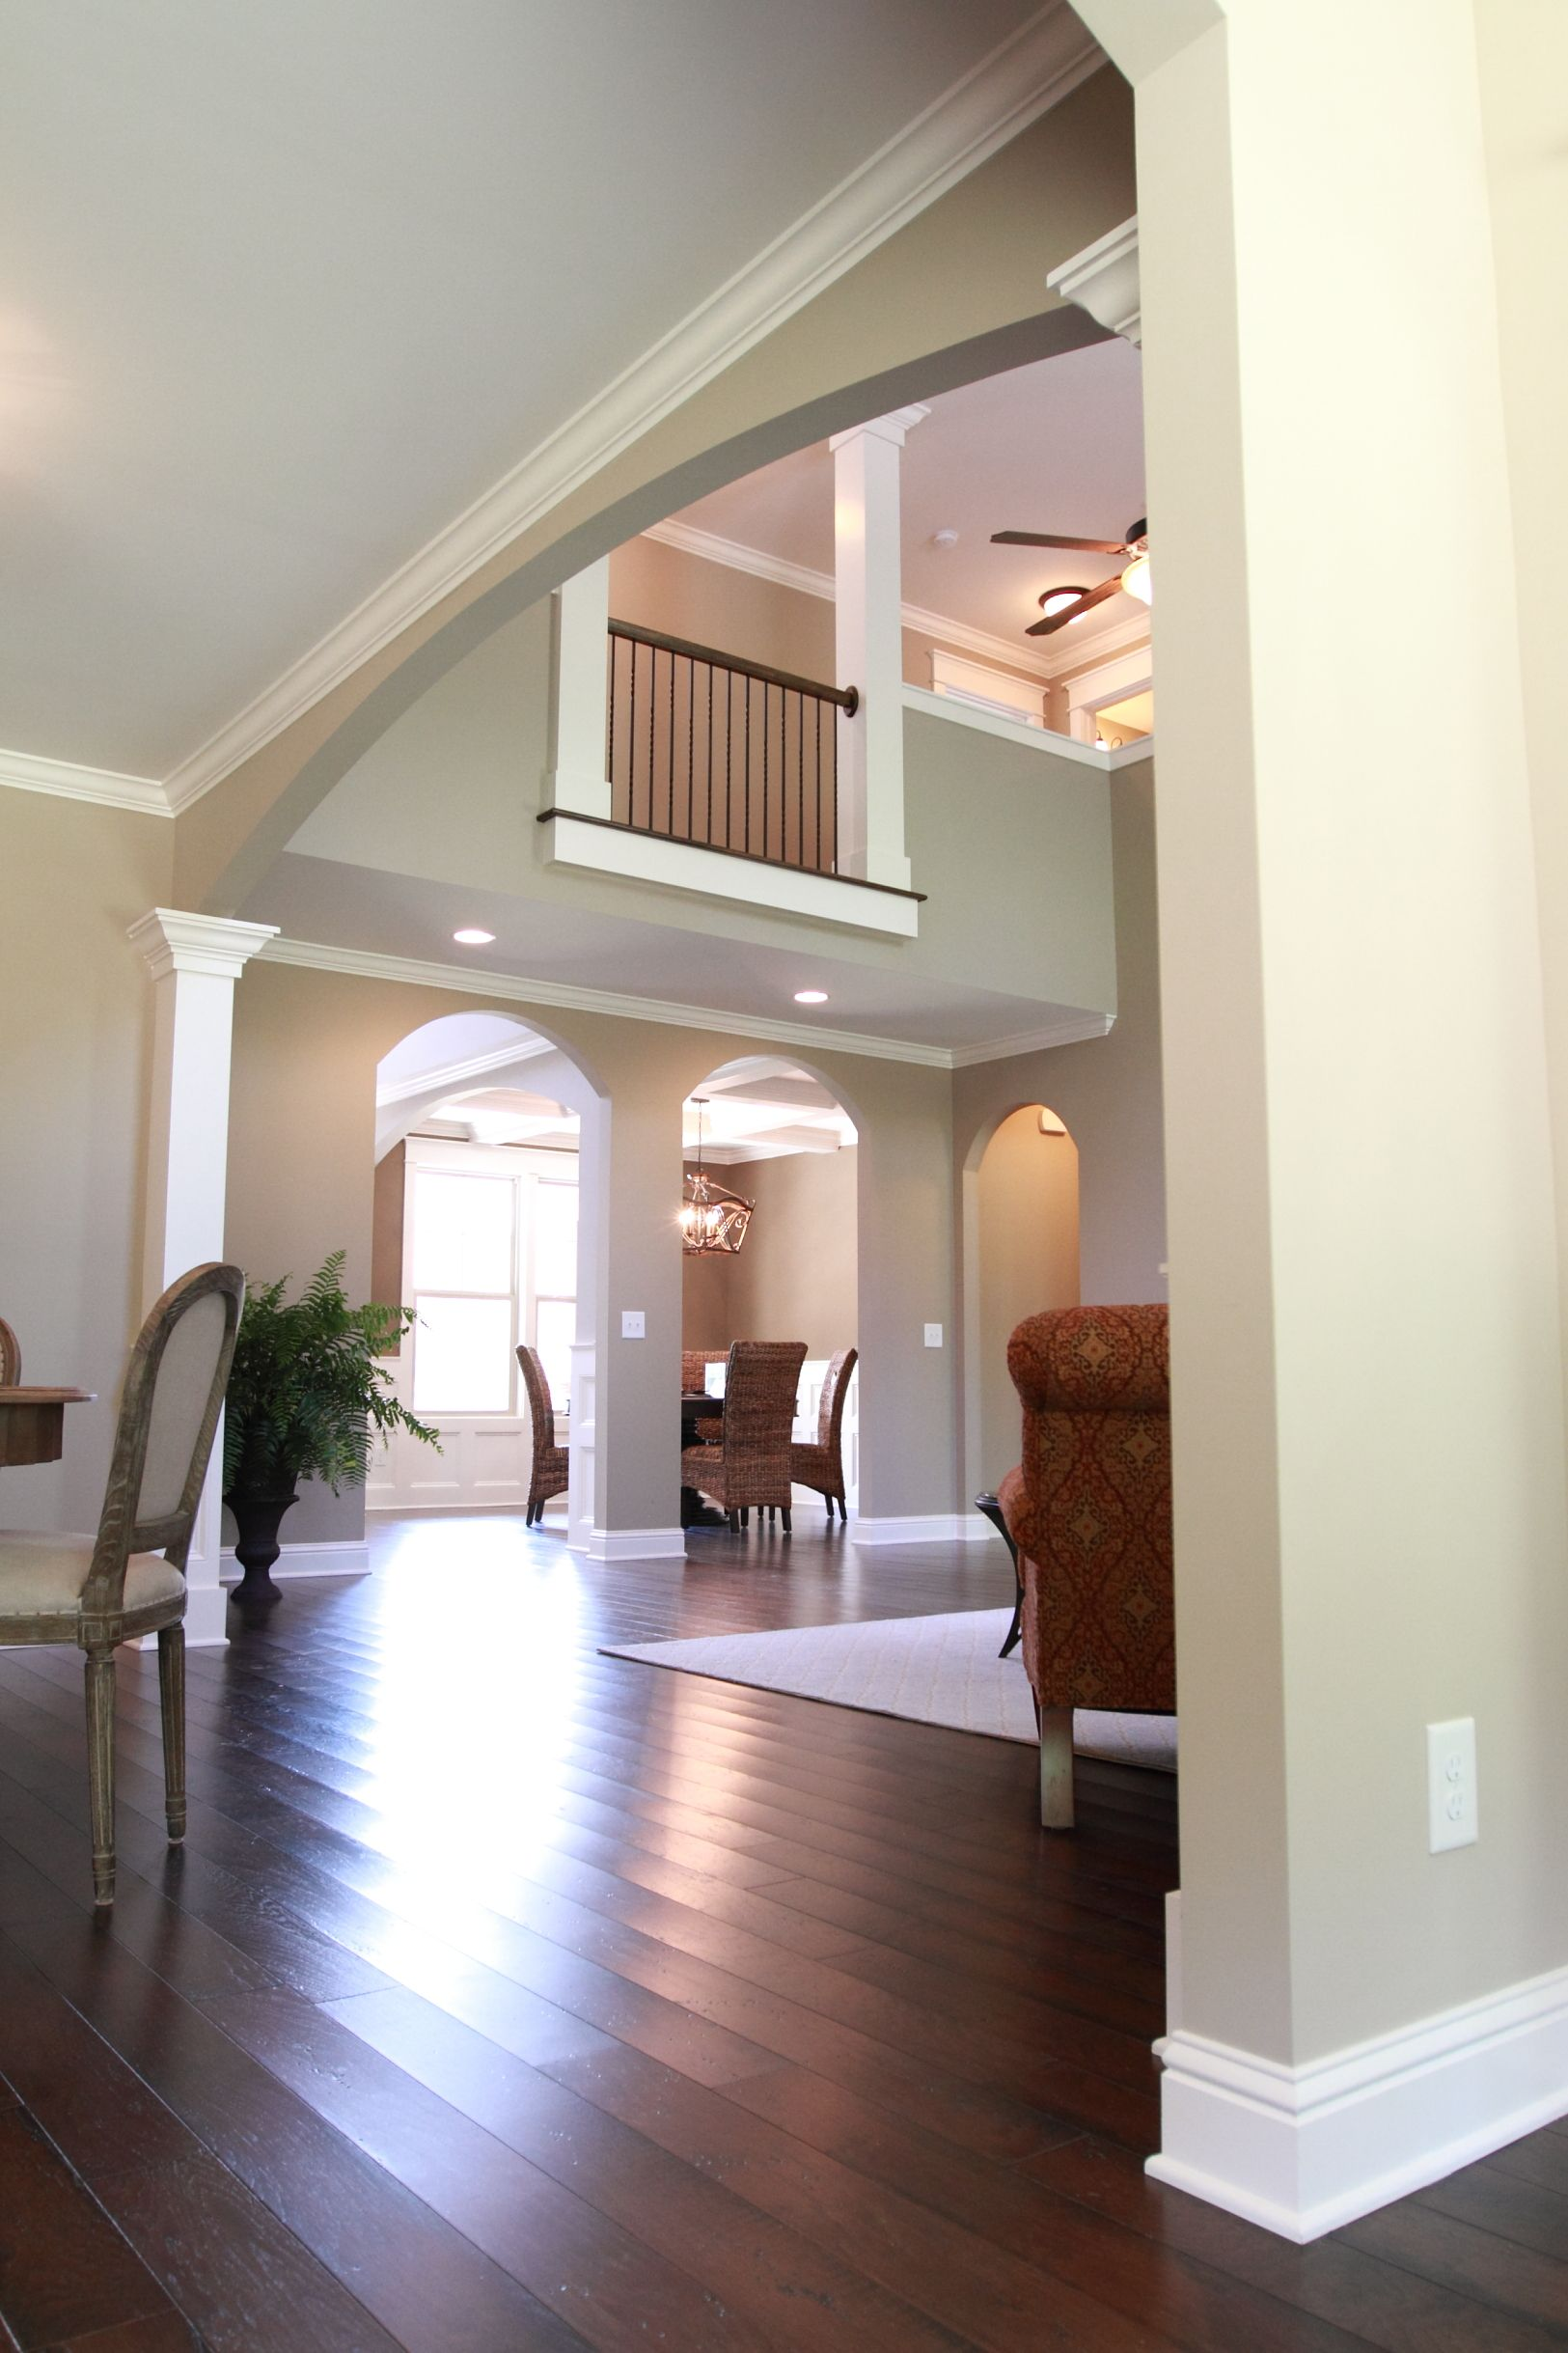 wood floors and two-story ceiling in the living room